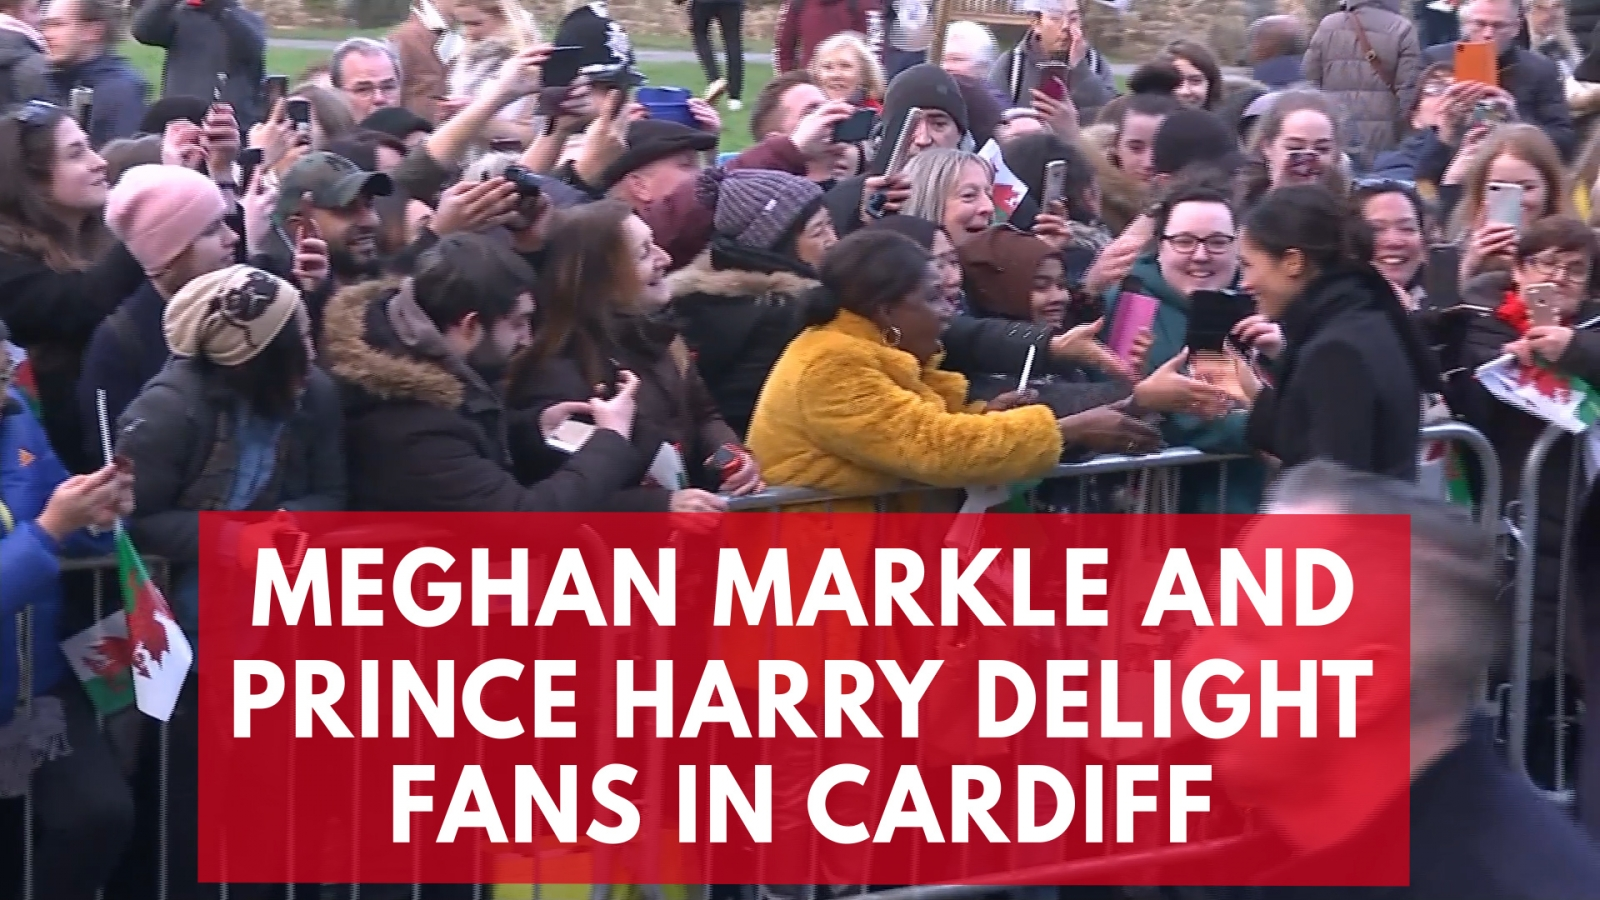 prince-harry-and-meghan-markle-delight-fans-in-cardiff